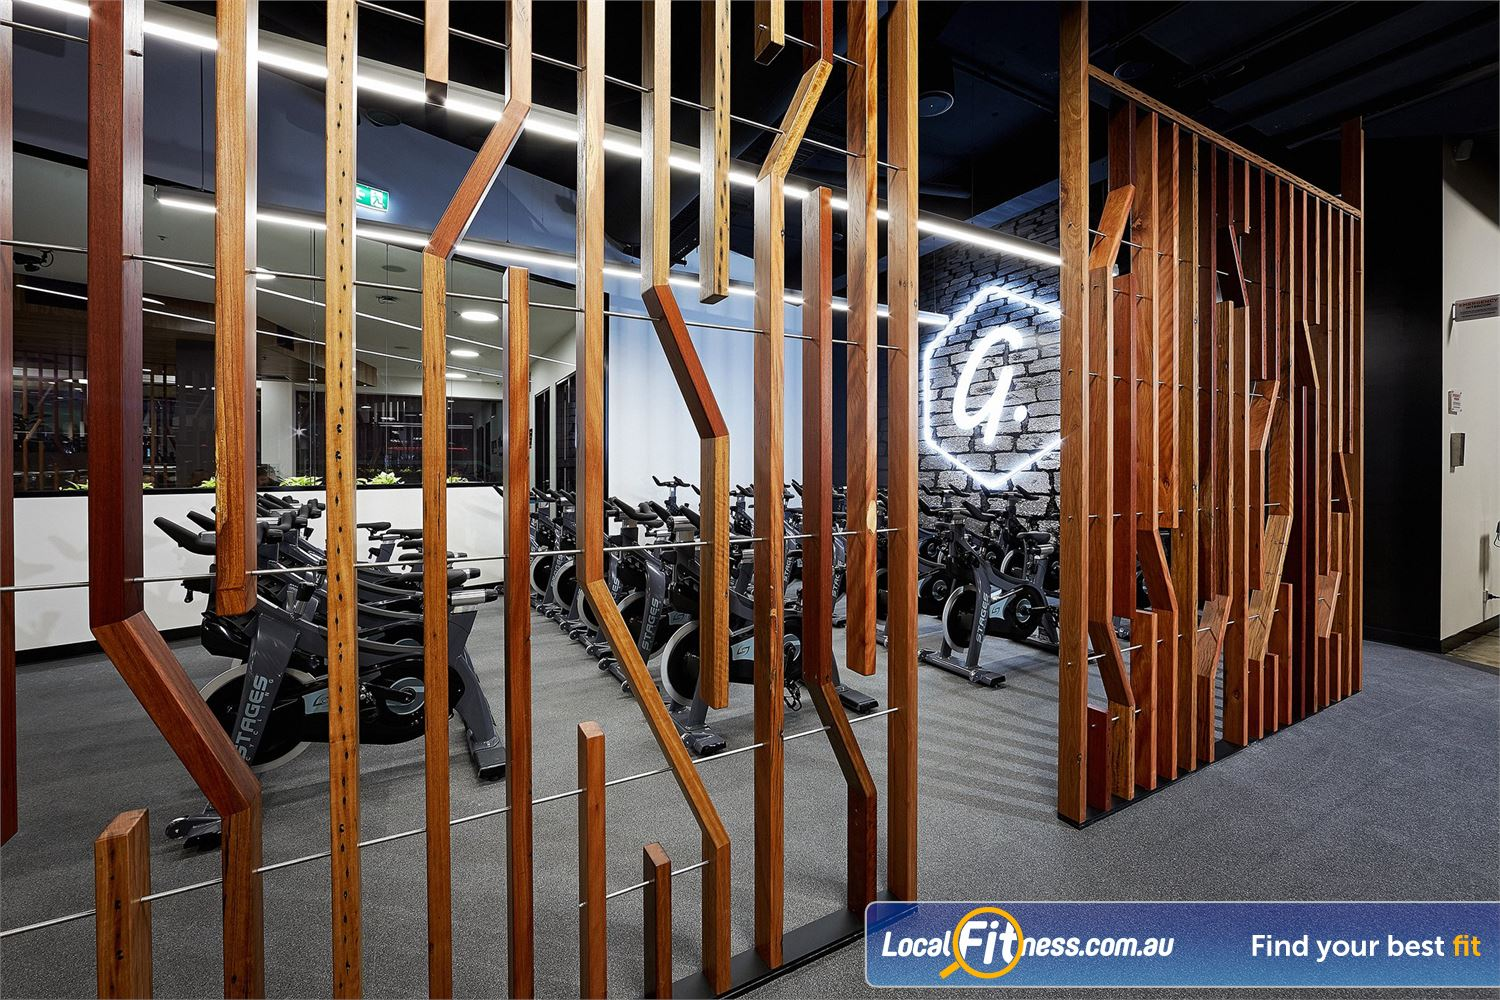 Goodlife Health Clubs West Lakes The new age West Lakes spin cycle studio.